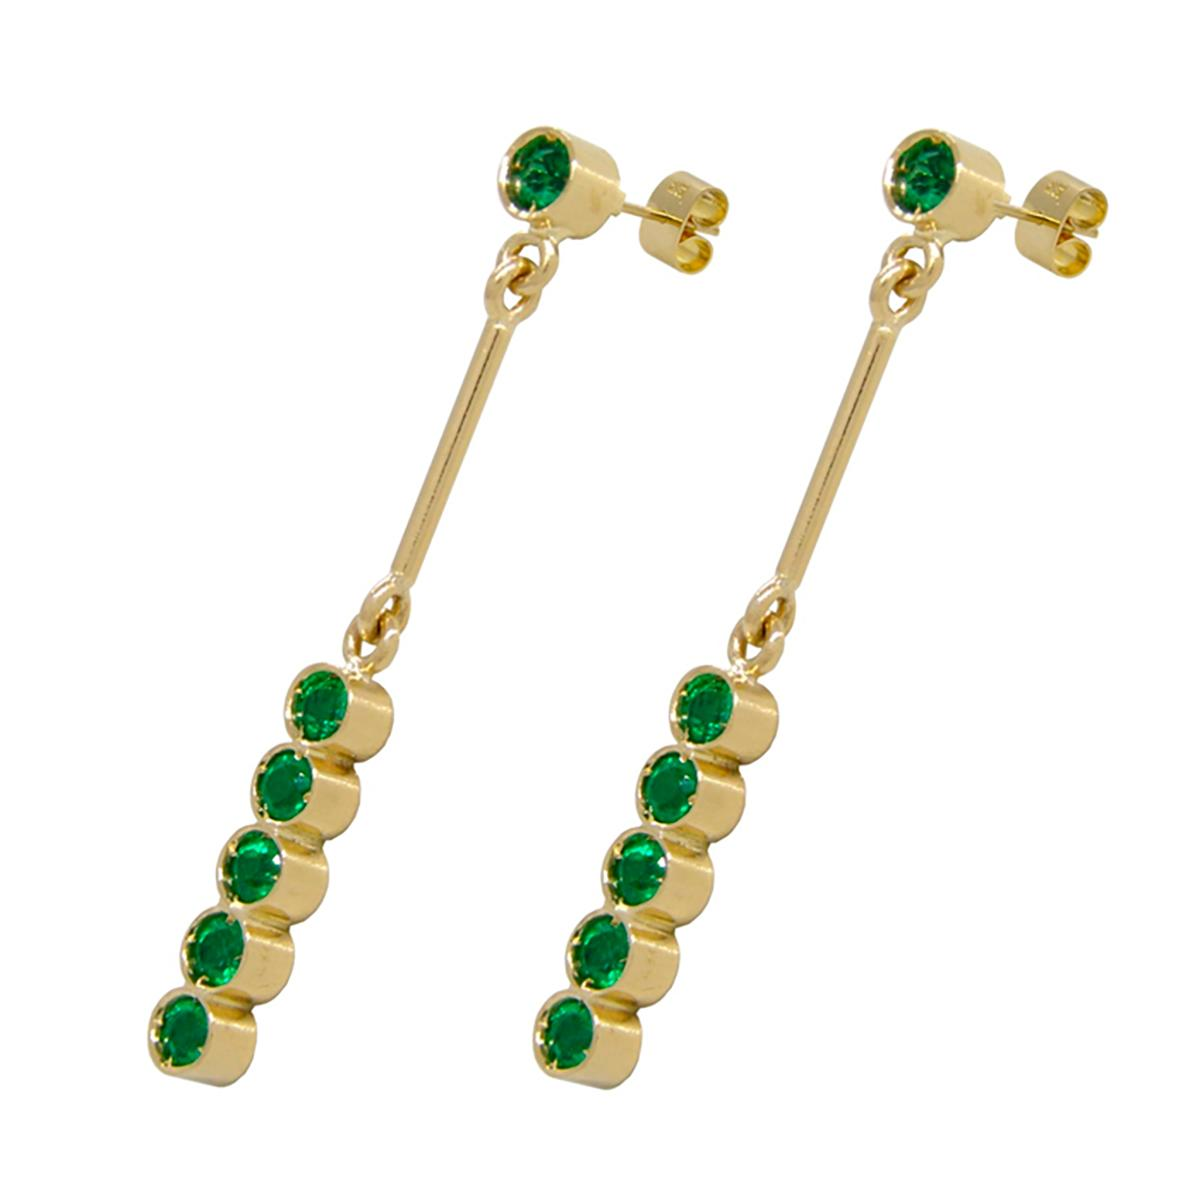 18k-yellow-gold-drop-earrings-with-round-cut-emeralds-in-bezel-setting